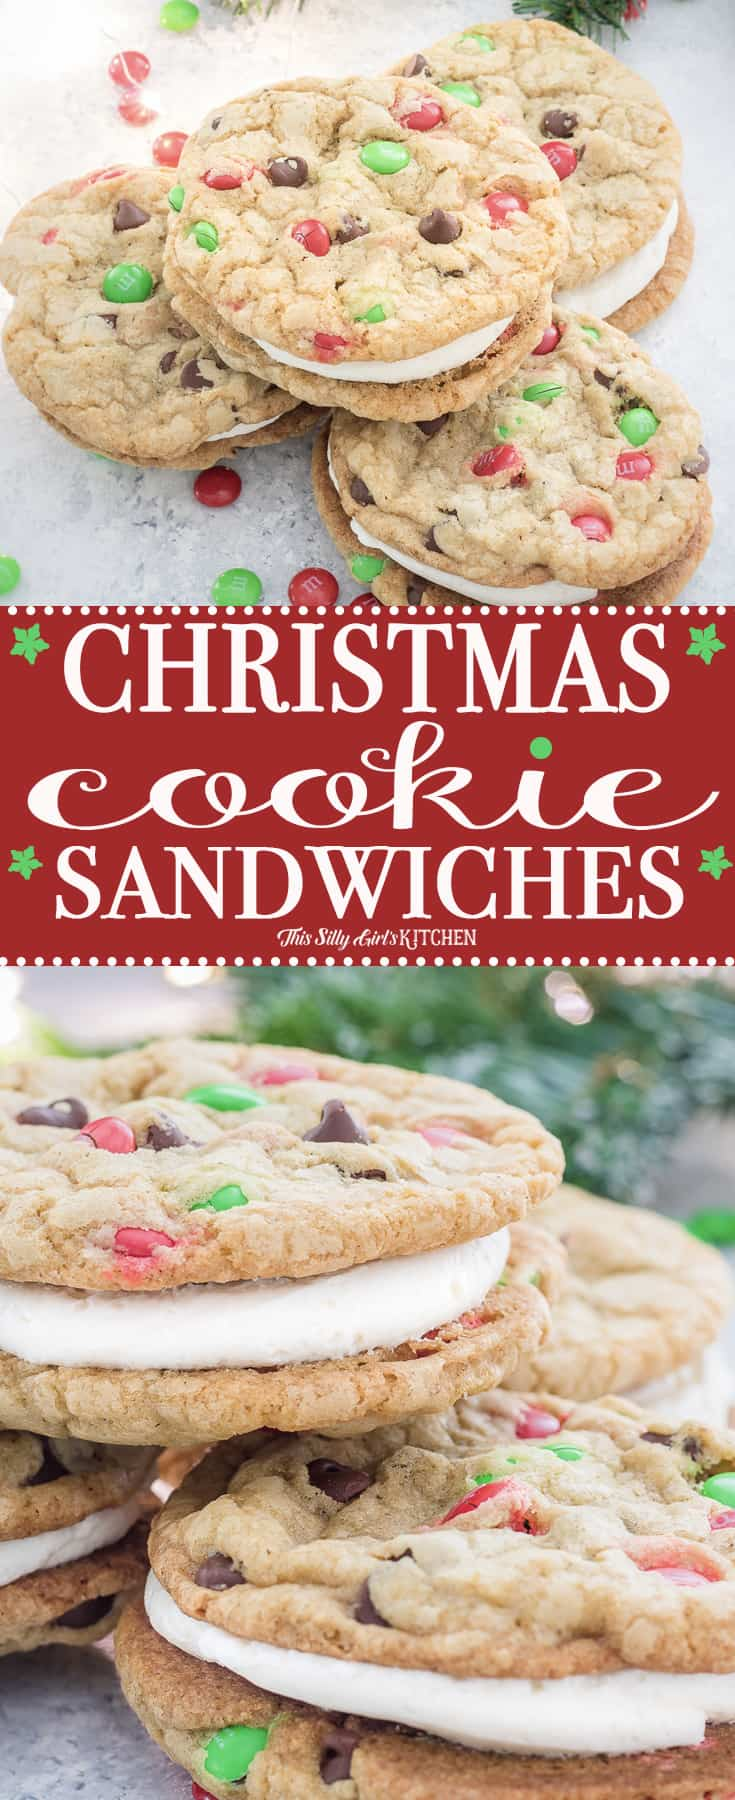 Christmas Cookie Sandwiches, the fluffiest buttercream frosting sandwiched between two soft and chewy chocolate chip cookies loaded with holiday M&M's! #Recipe from ThisSillyGirlsKitchen.com #ChristmasCookies #SandwichCookies #CookiesForSanta #Christmas